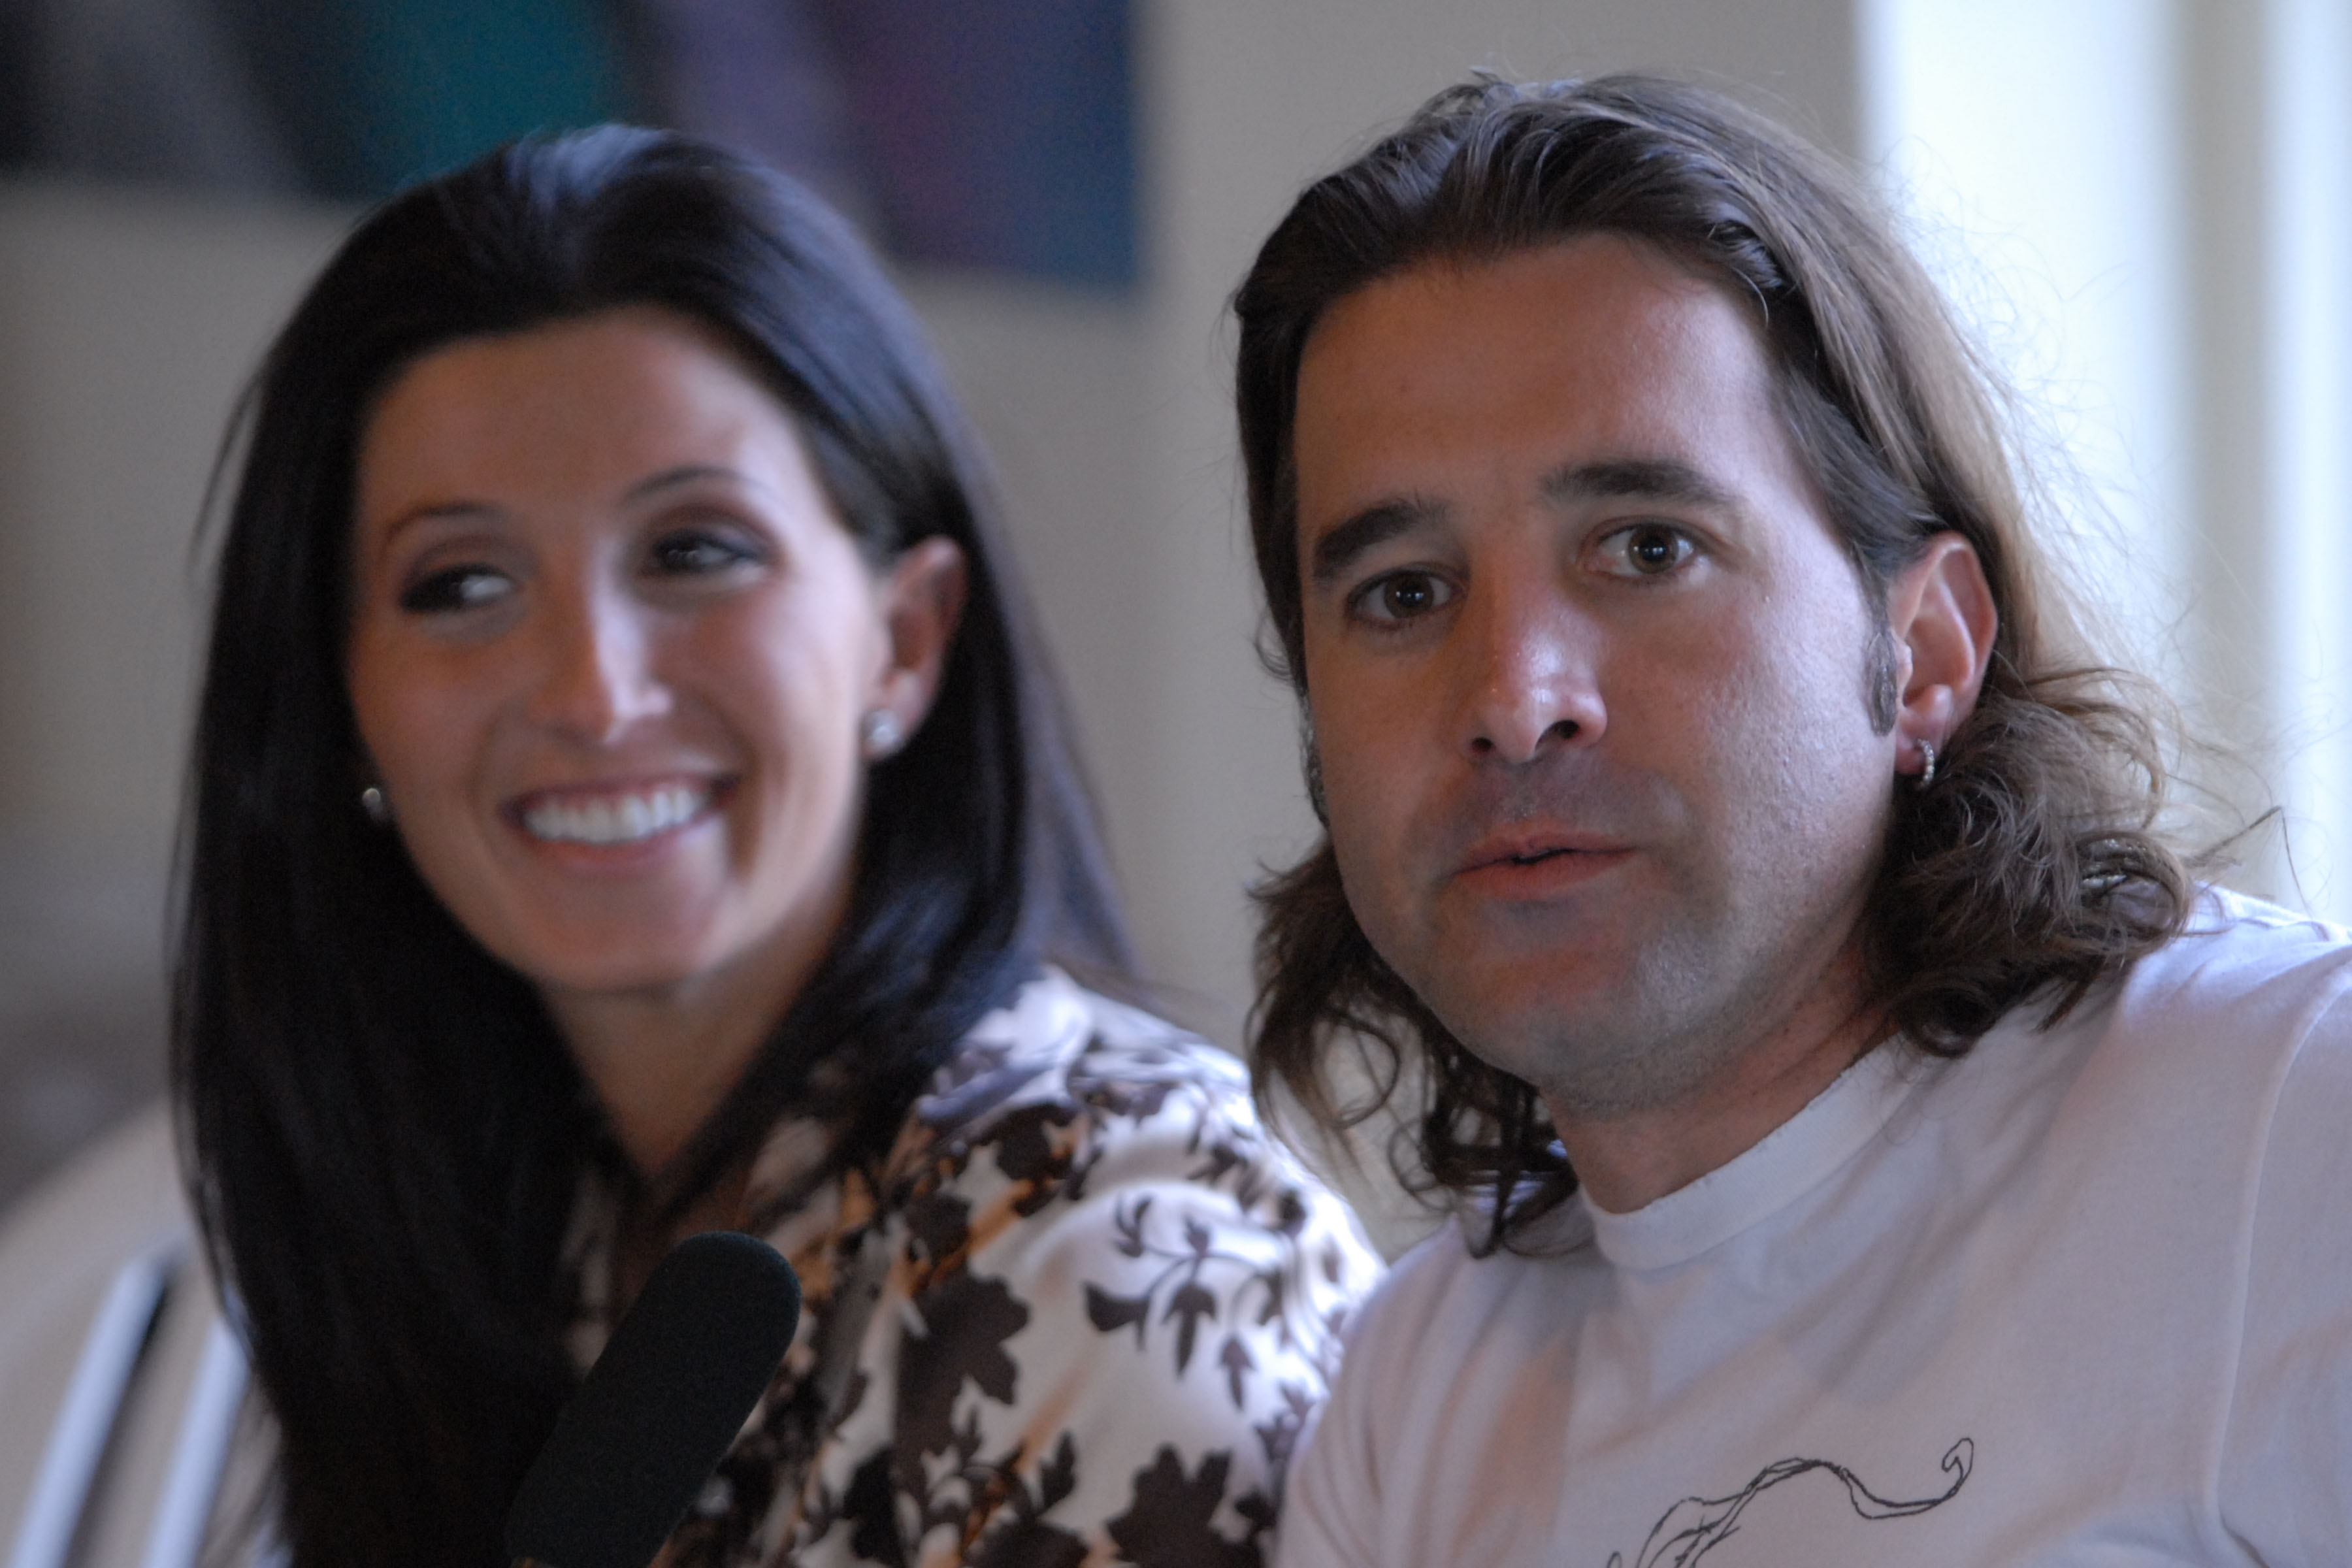 BOCA RATON, FL - MAY 8:  Creed lead singer Scott Stapp and his wife Jaclyn Nesheiwat announce their sponsorship for The Haven